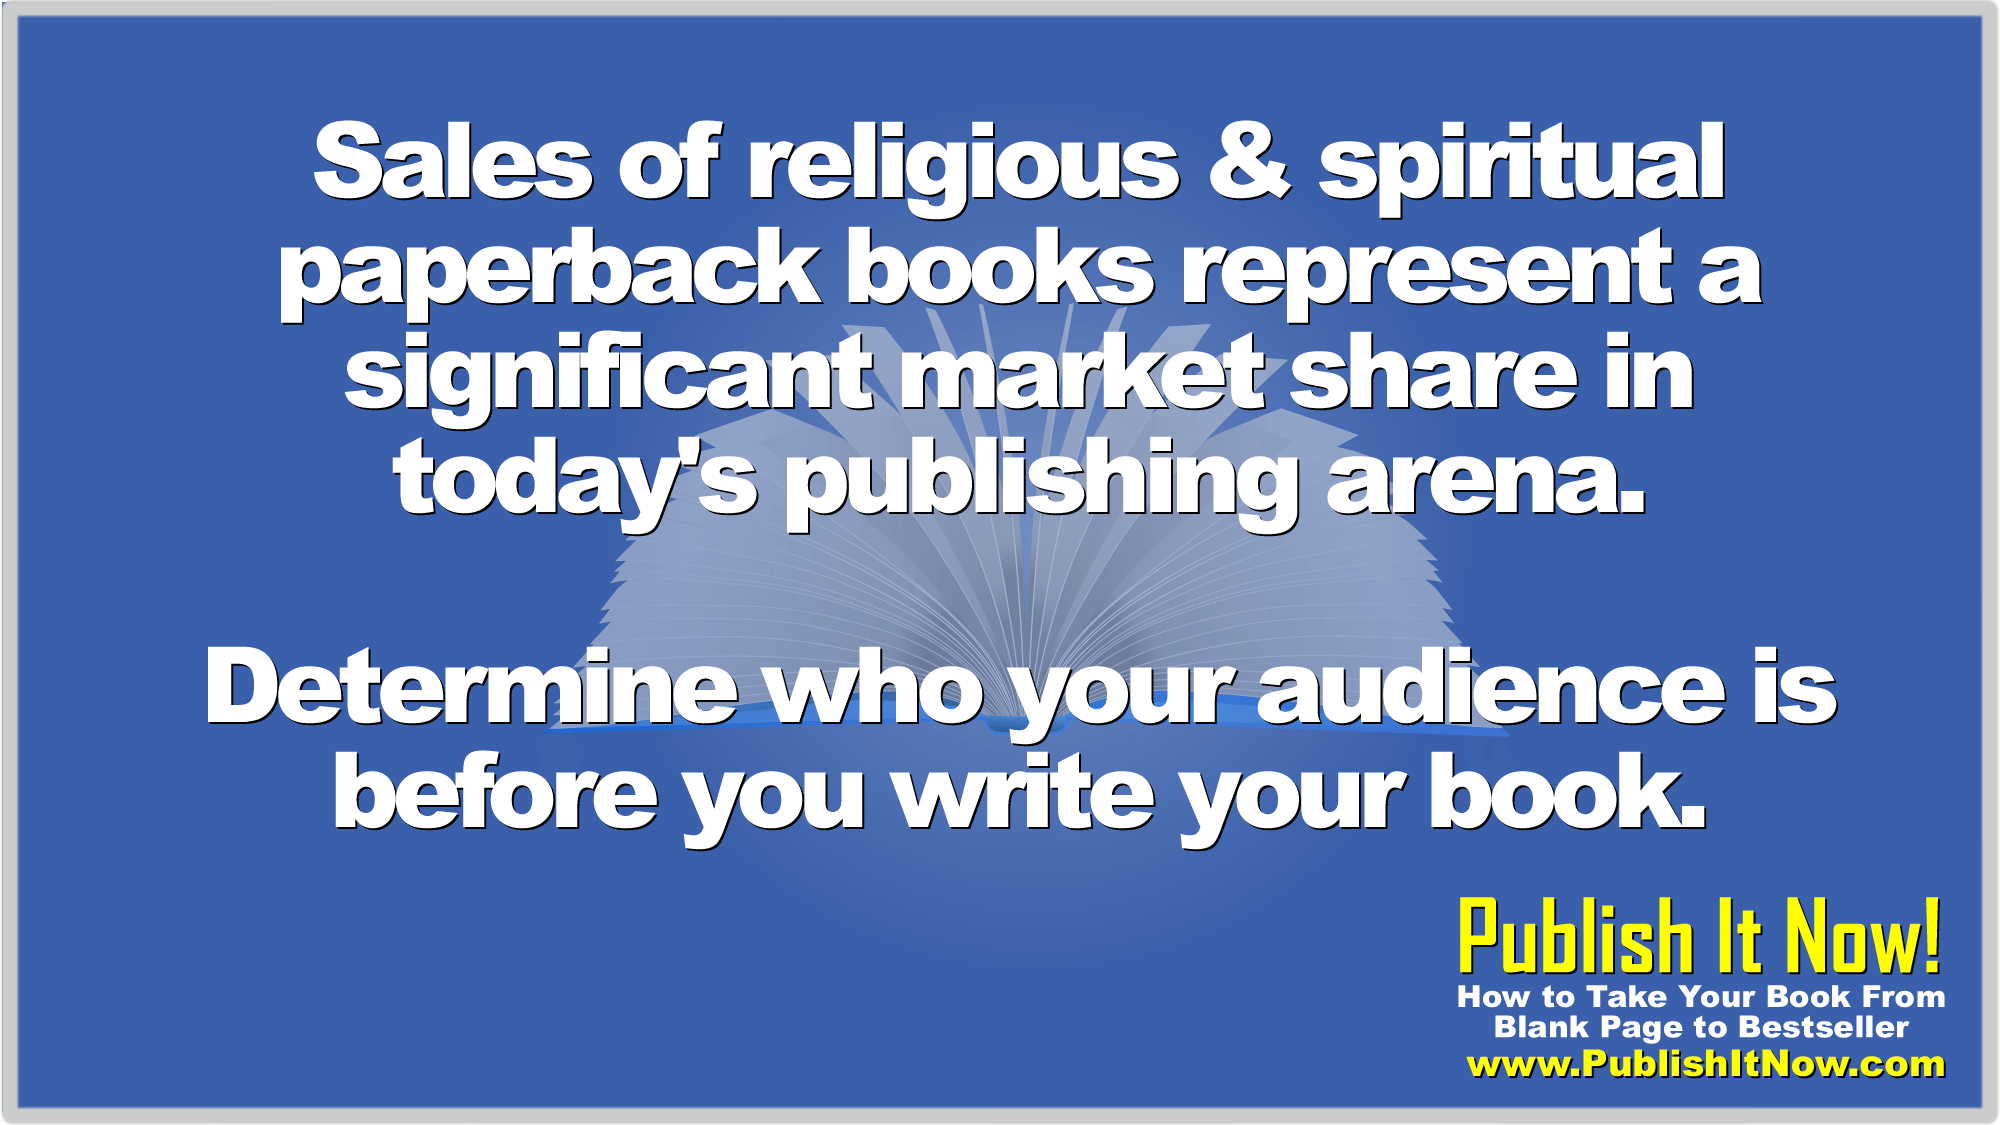 Sales of religious & spiritual paperback books represent a significant market share in today's publishing arena.  Determine who your audience is before you write your book.